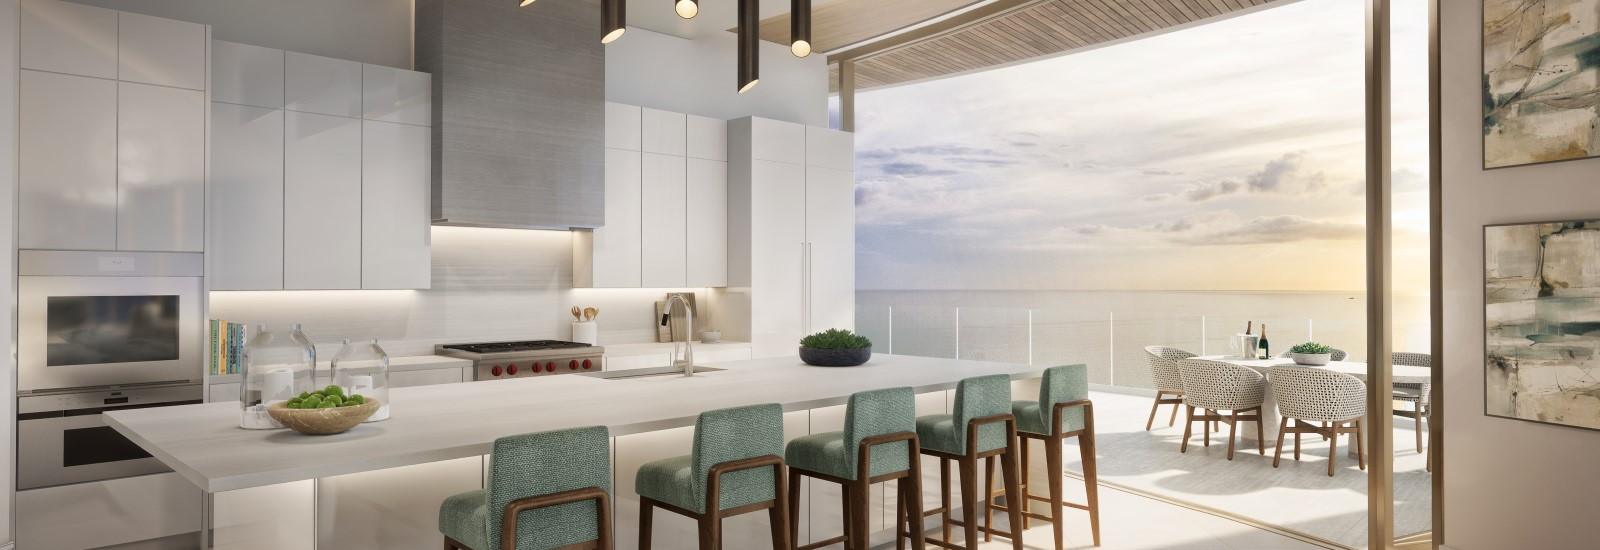 3-the-residences-at-the-st-regis-longboat-key-kitchen.jpg